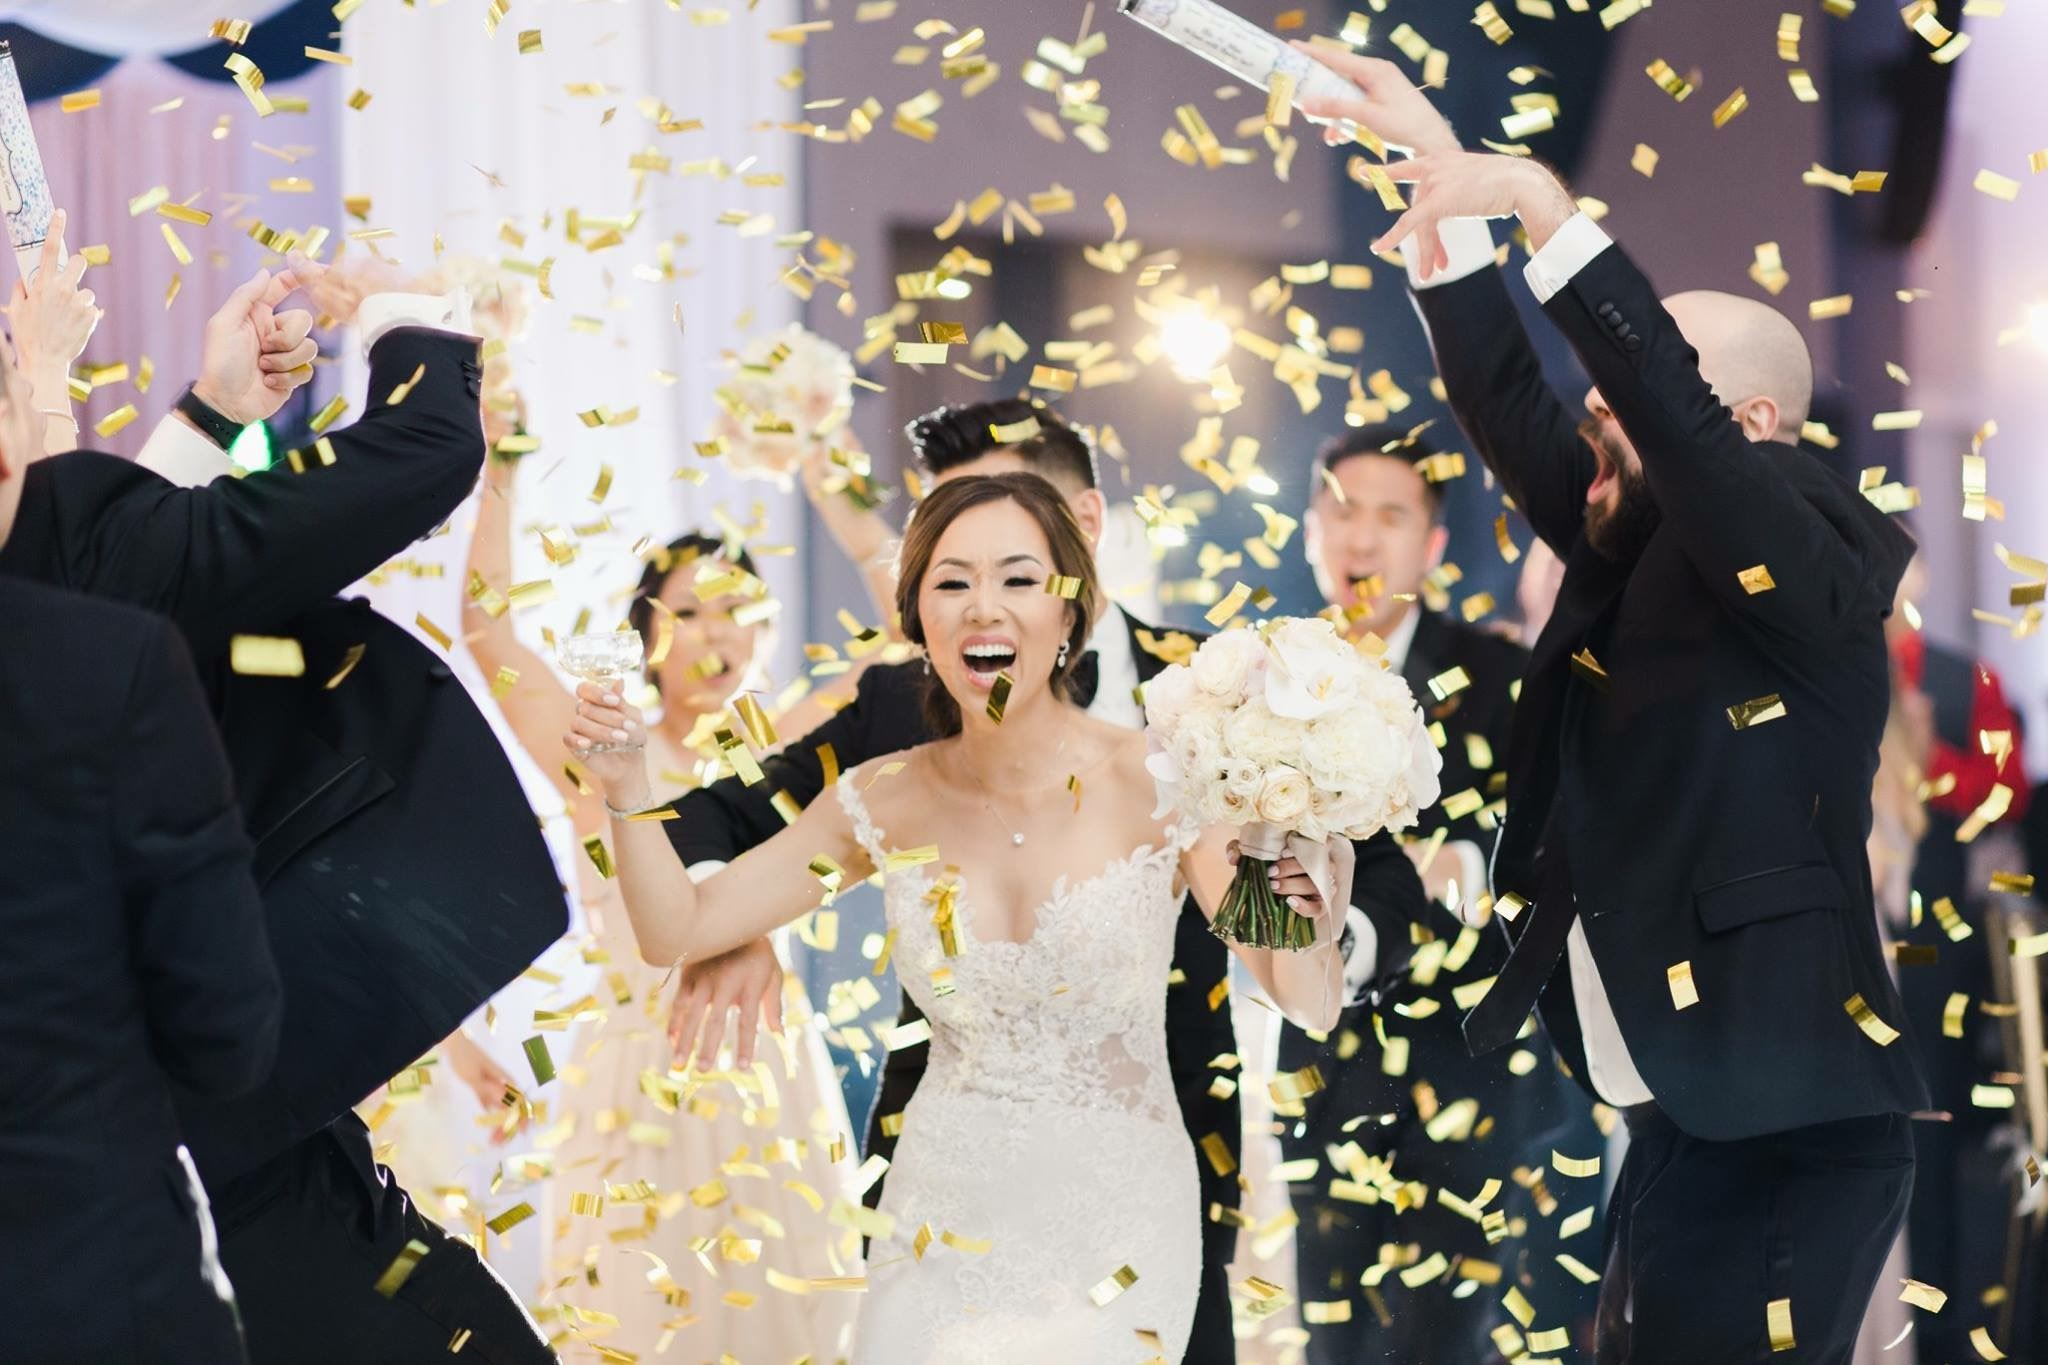 A bride is showered in gold confetti